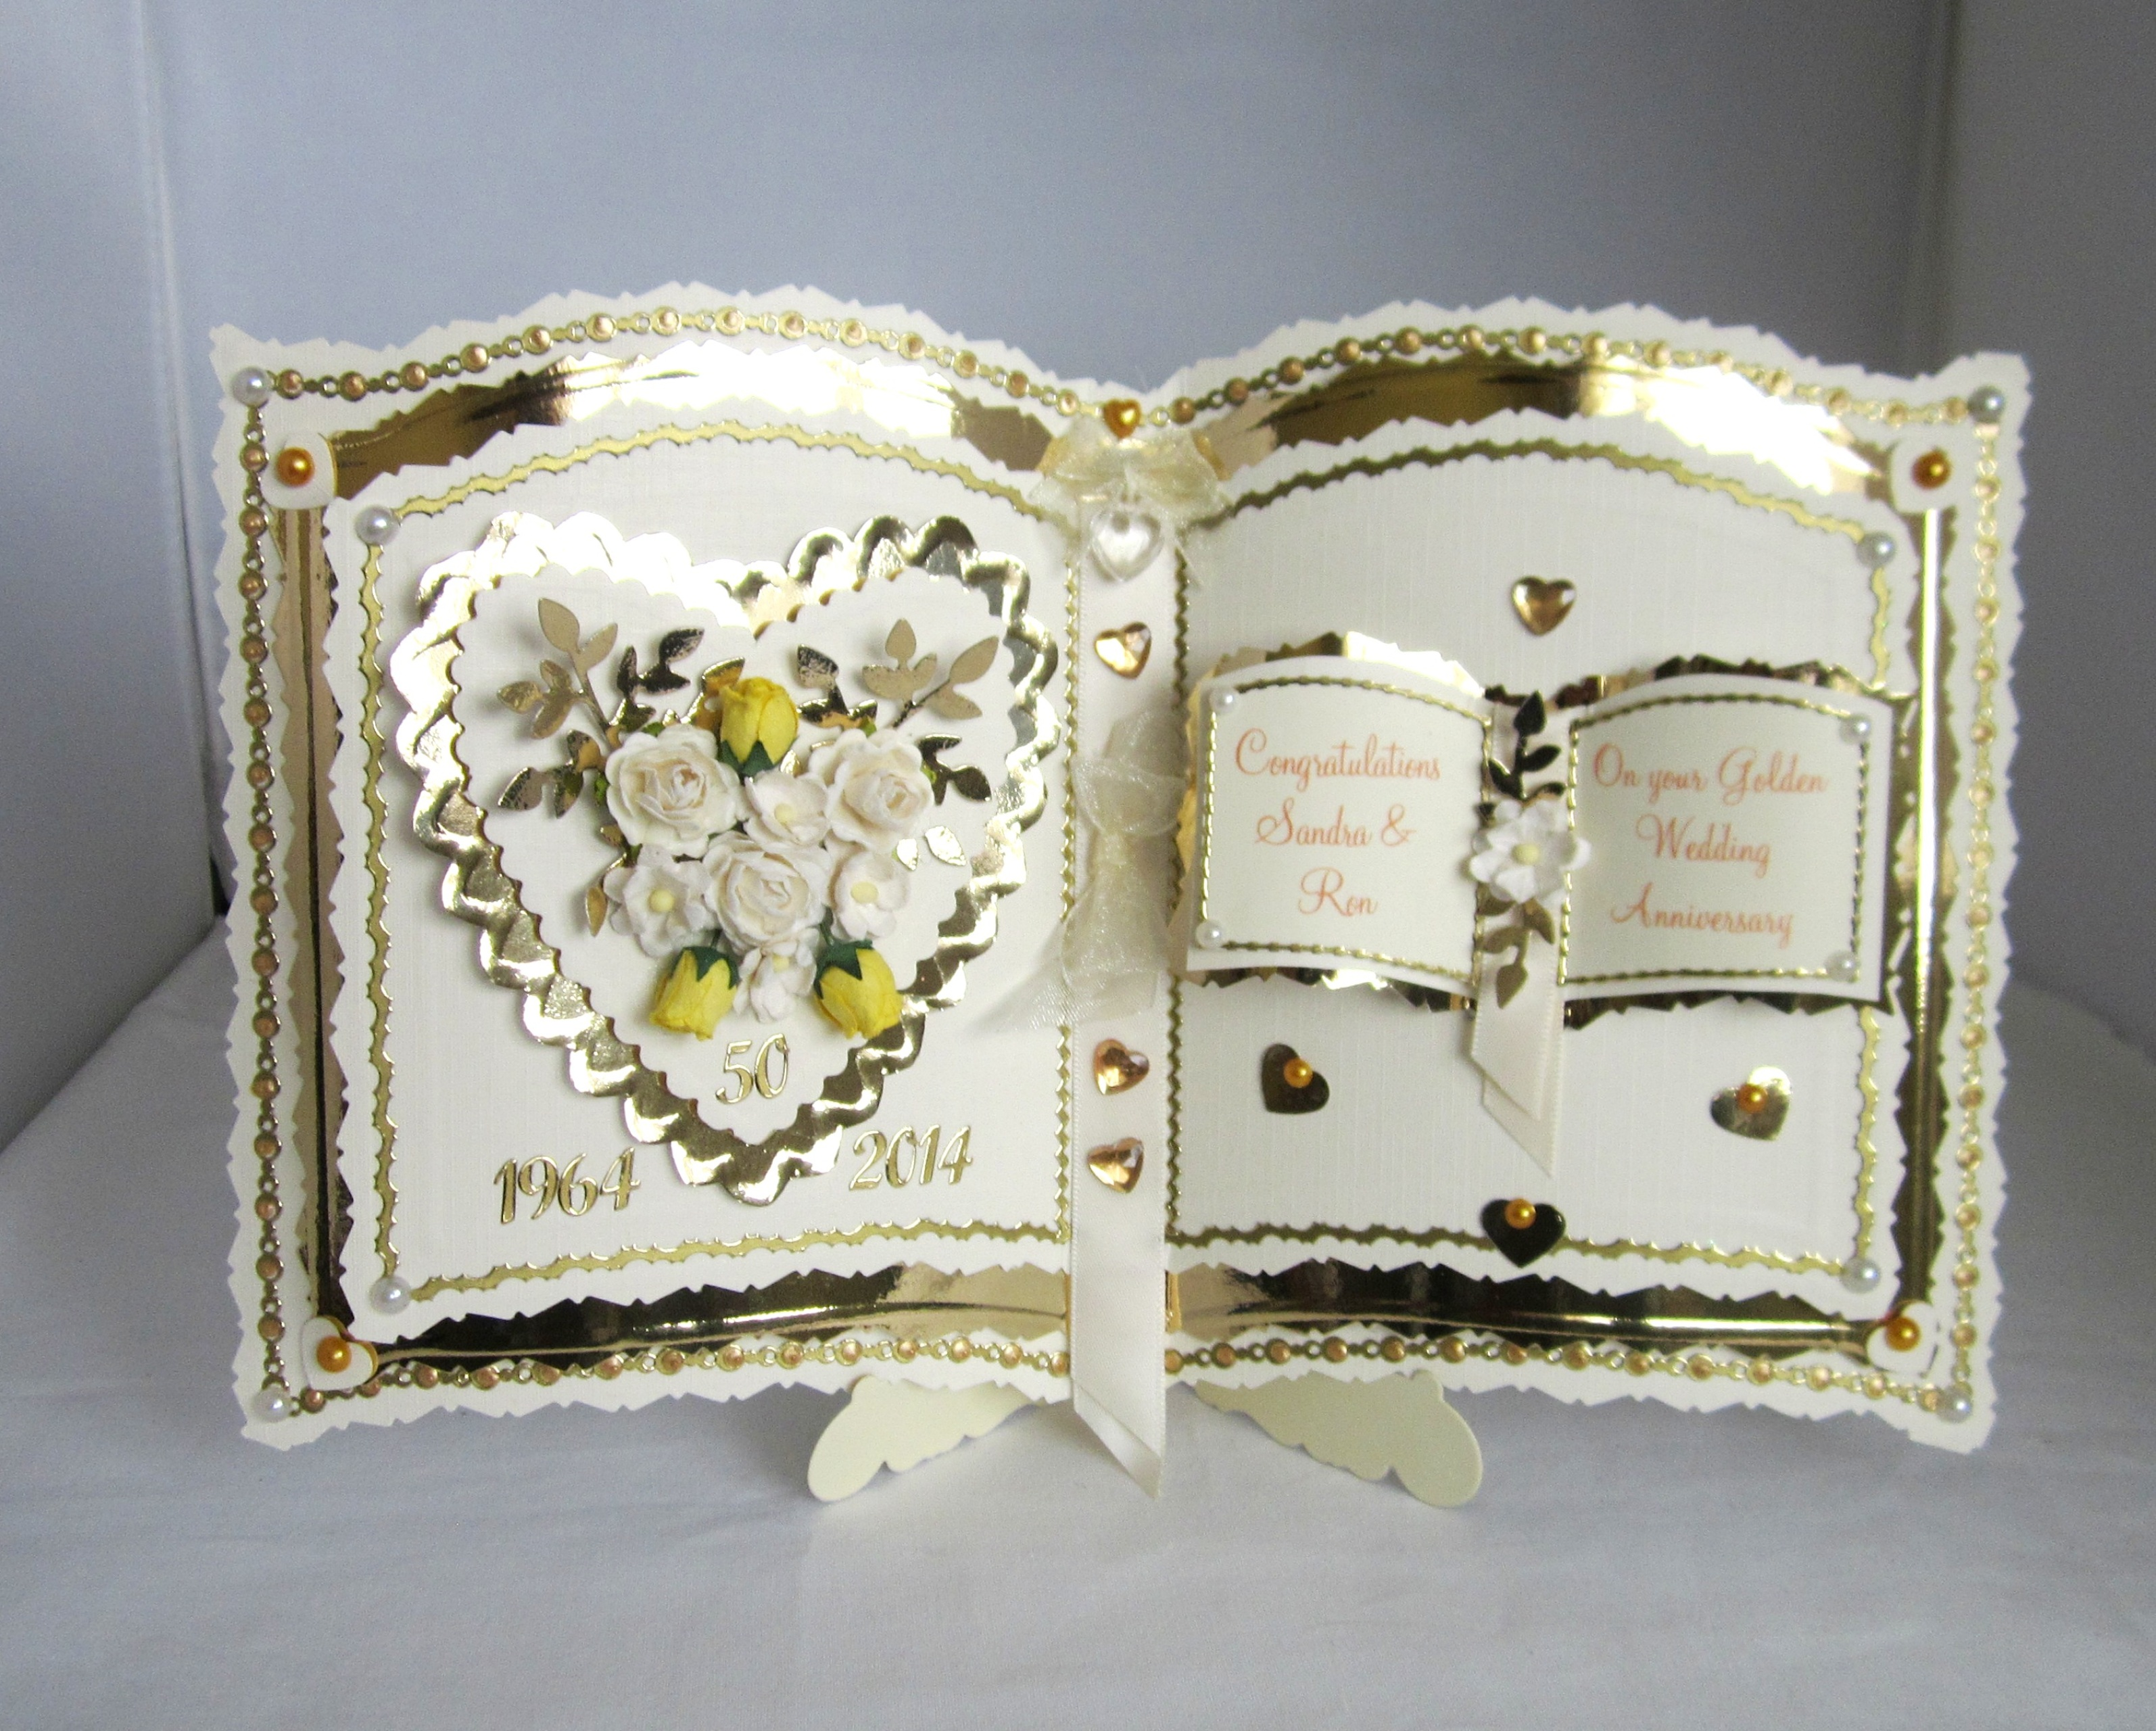 Bookatrix Golden Wedding Anniversary Card